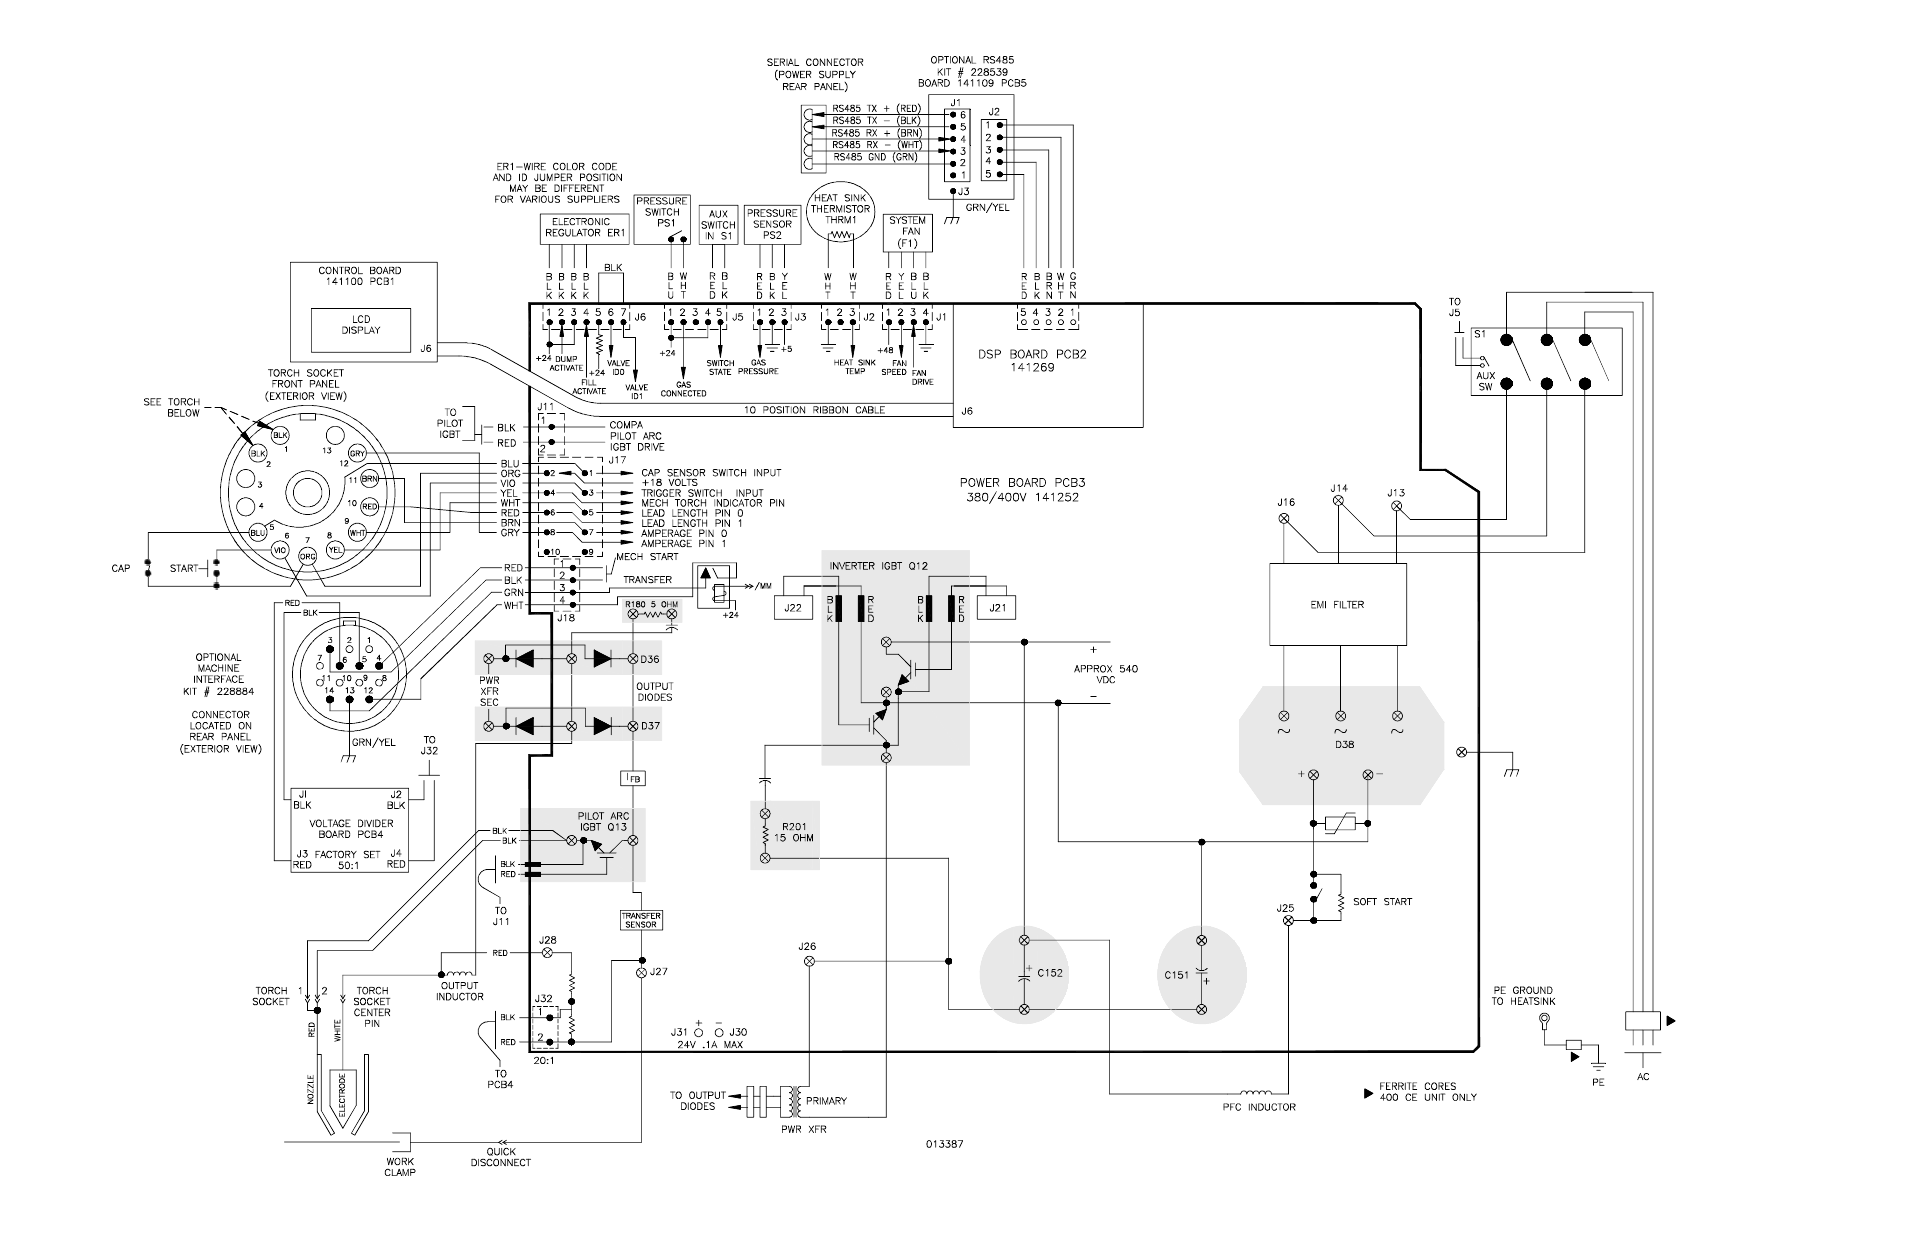 Schematic diagram (380 v ccc, 400 v ce), Schematic diagram